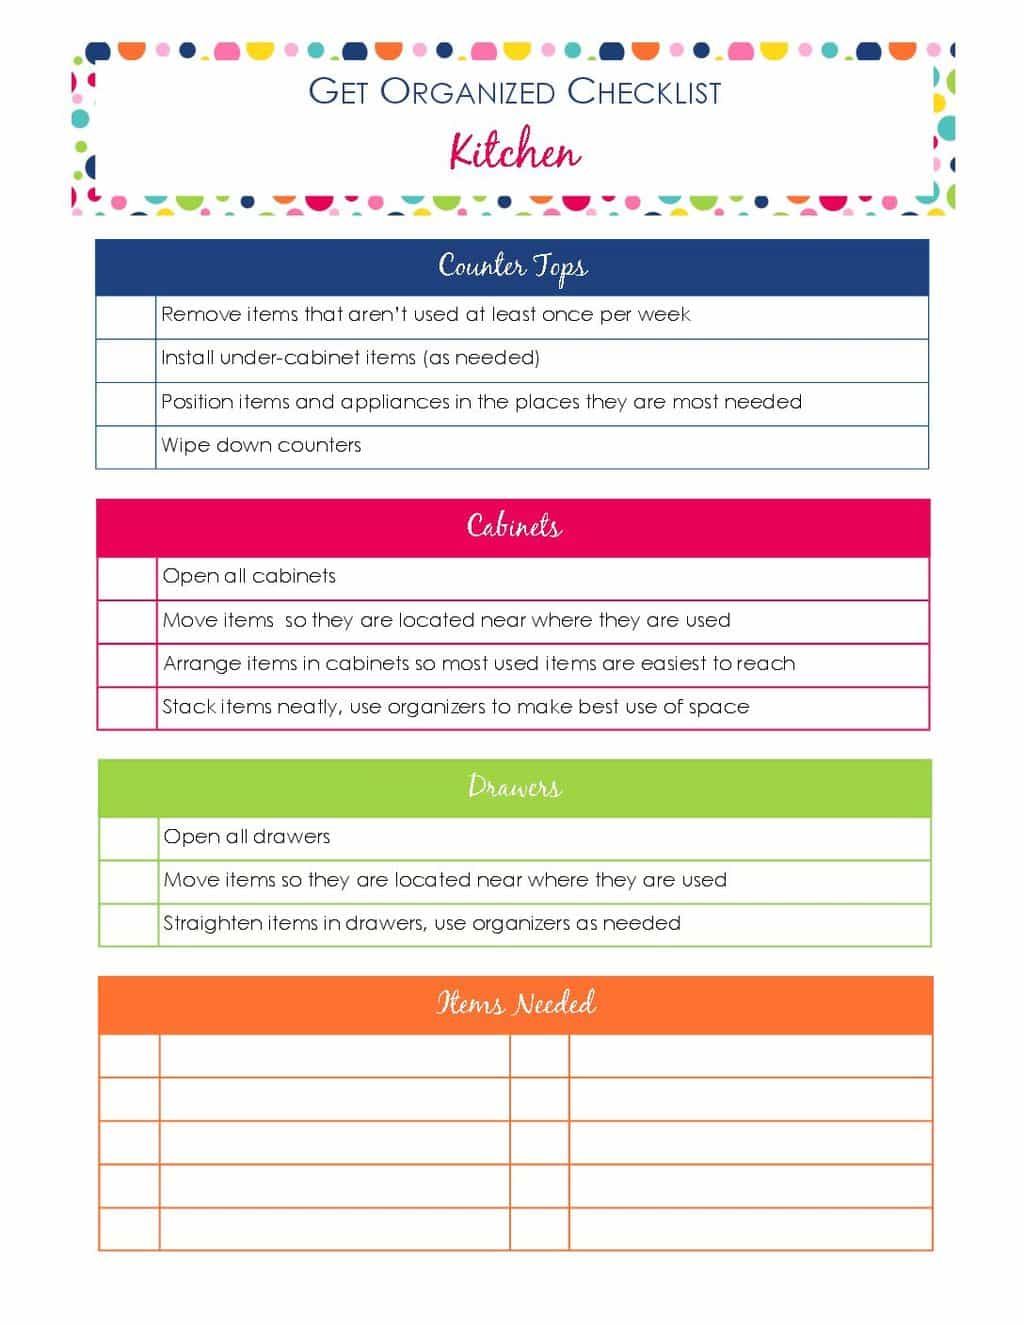 printable Get Organized Checklist for Your Kitchen